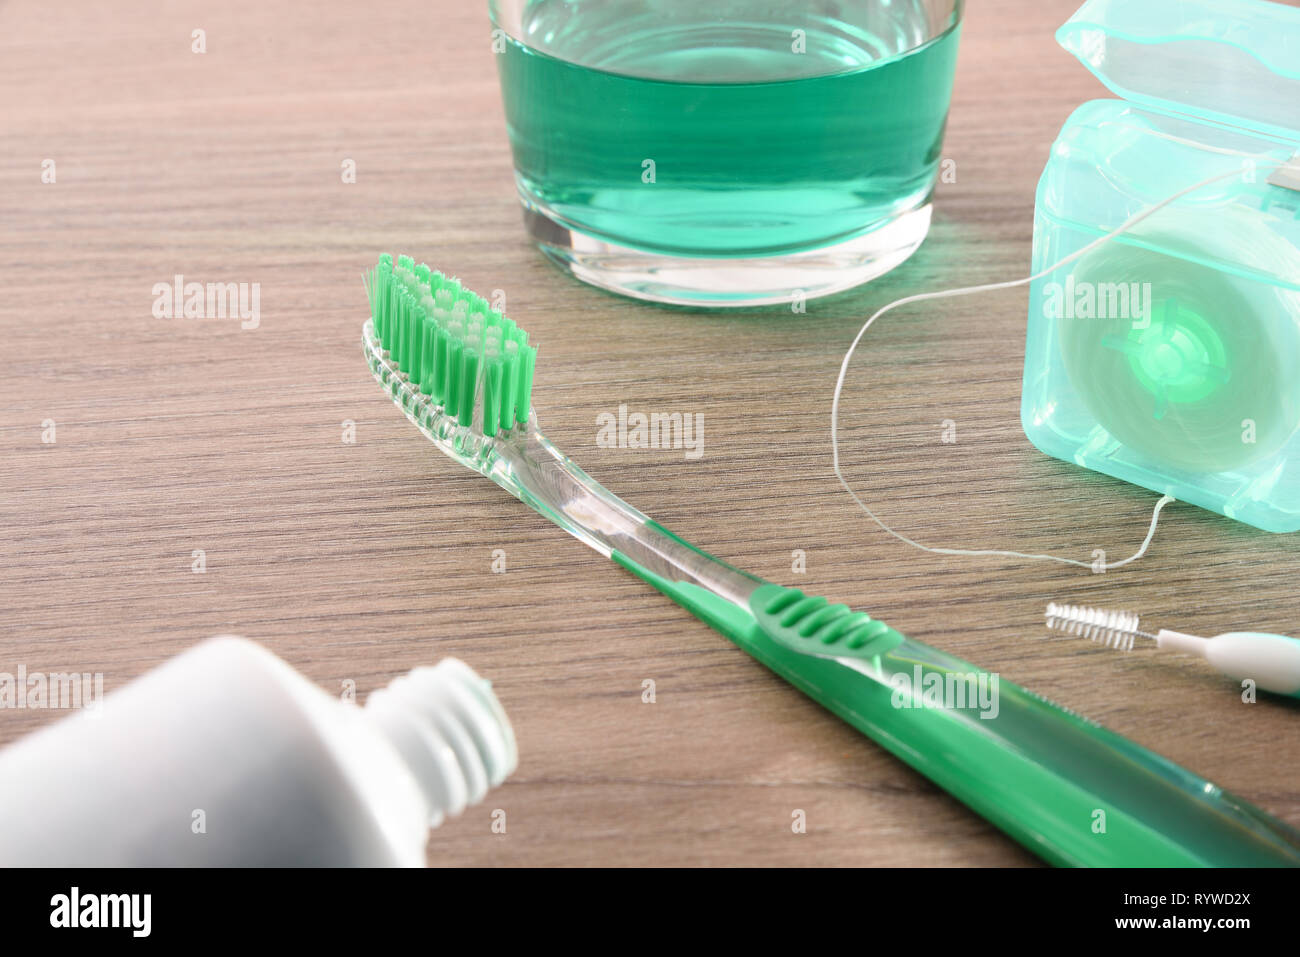 Concept of teeth cleaning at home with tools on wooden table close up . Horizontal composition. Elevated view - Stock Image